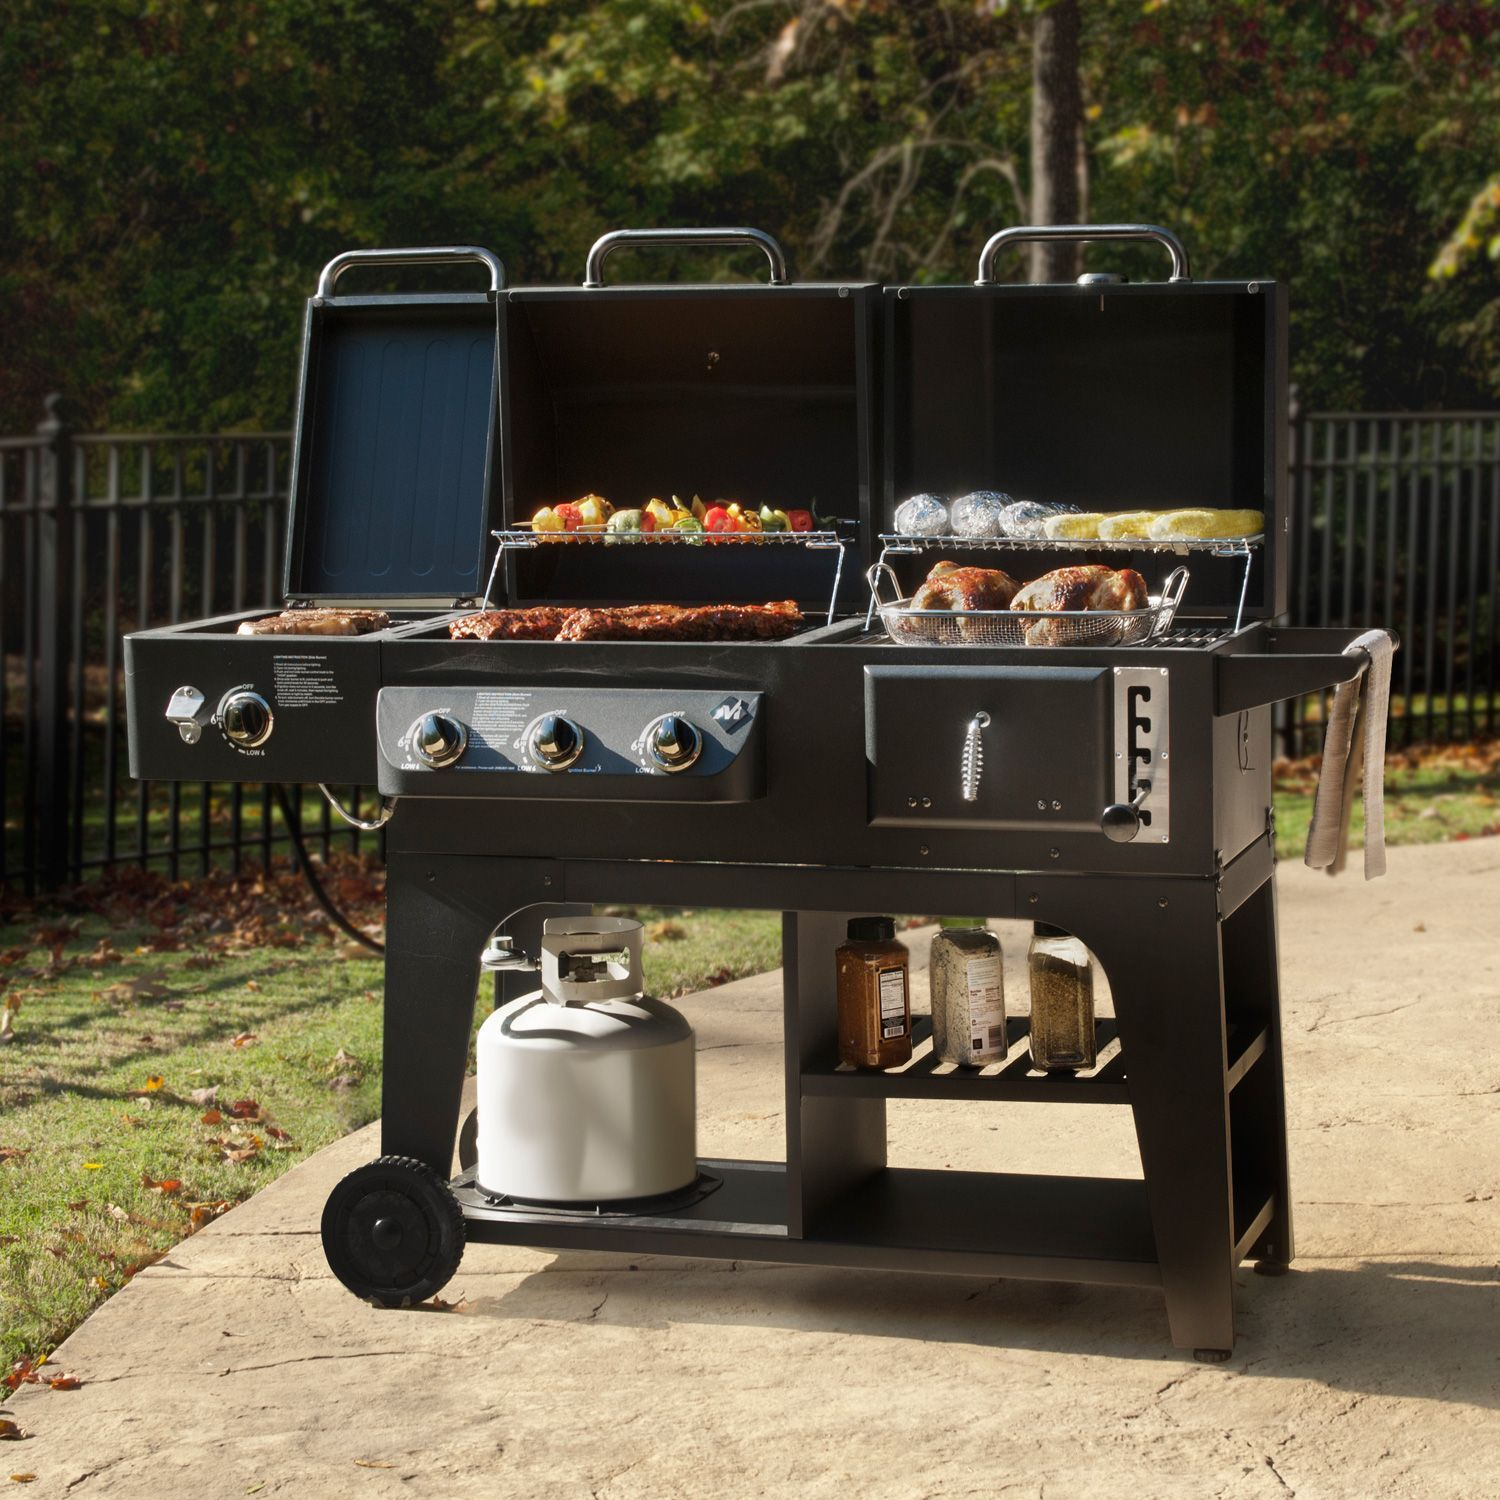 Member's Mark Hybrid Grill - Sam's Club OR a grill similar to this ...